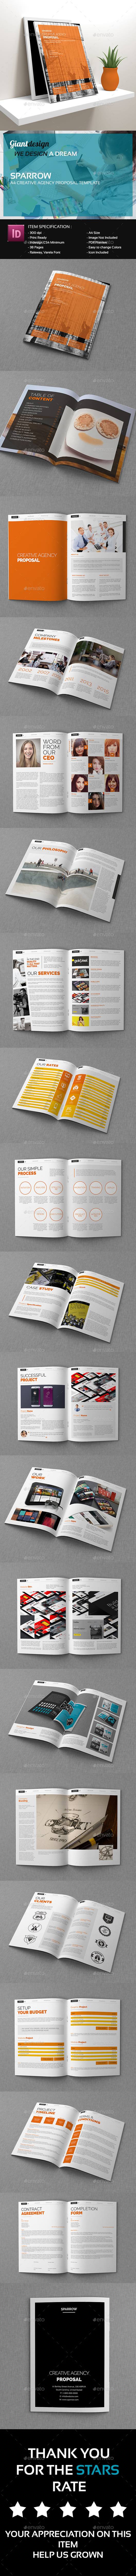 GraphicRiver Sparrow Creative Agency Proposal Template 11364595